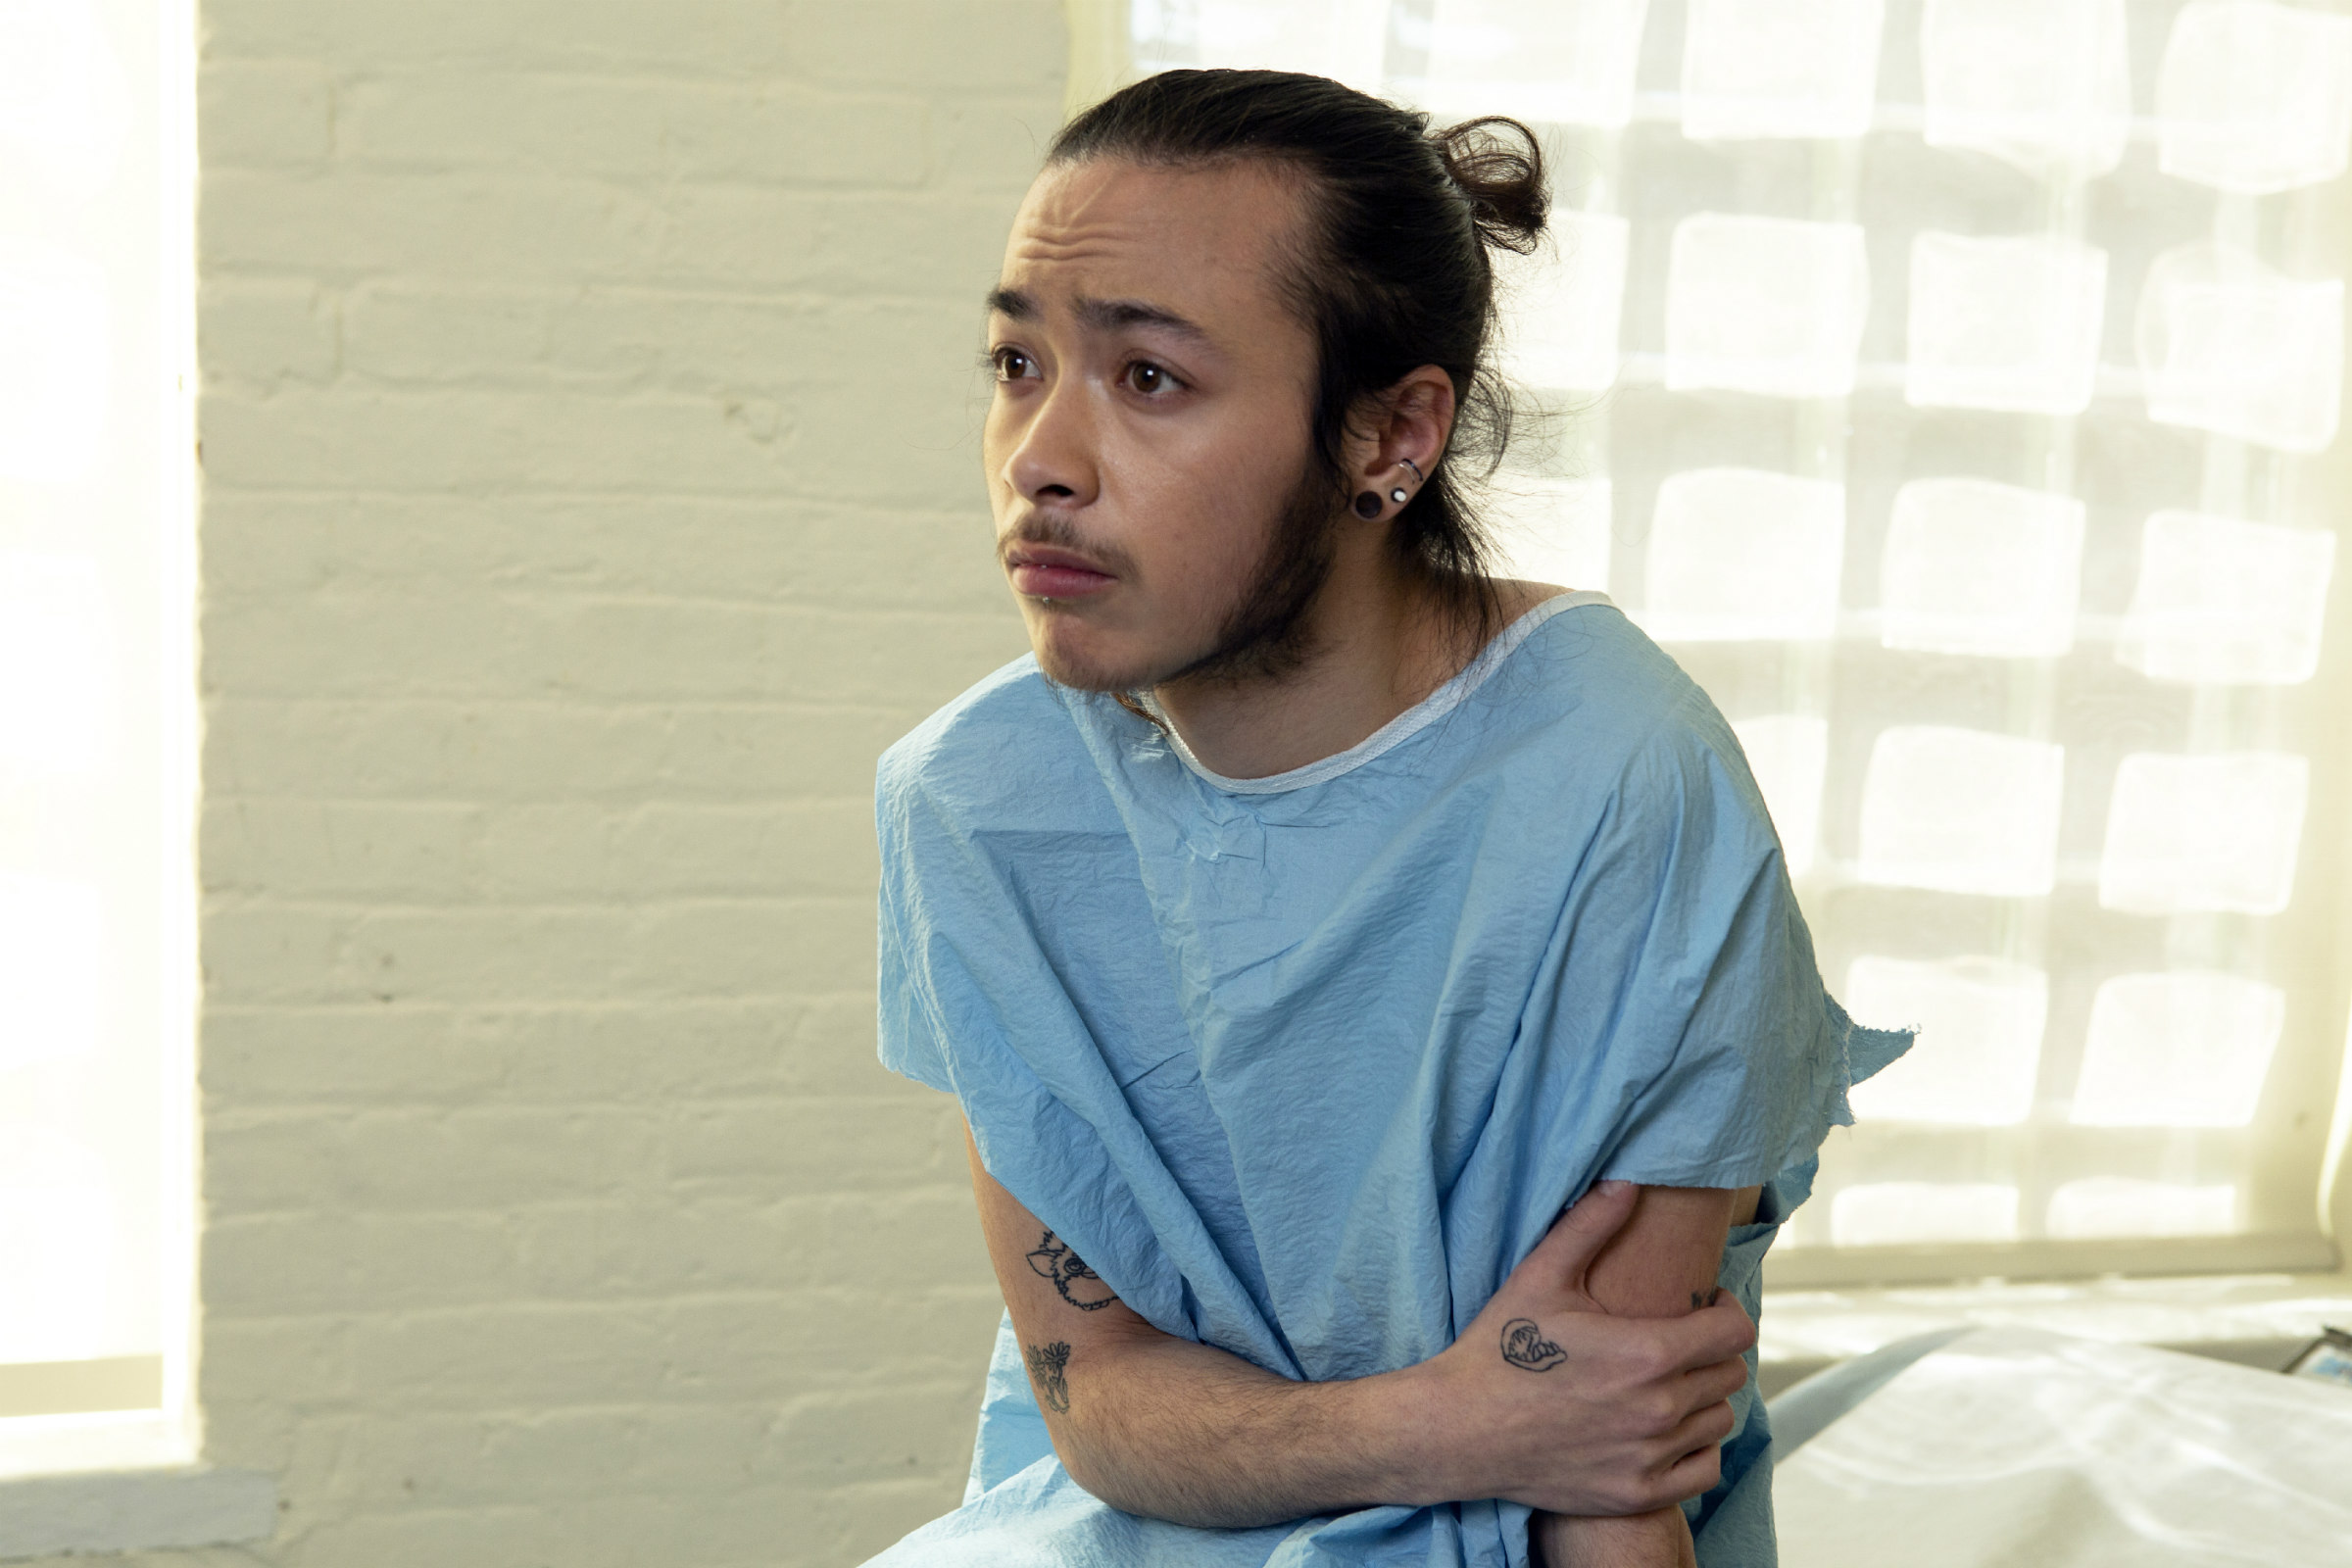 A genderqueer person in a hospital gown with their black hair pulled in a ponytail sits in an exam room looking worried